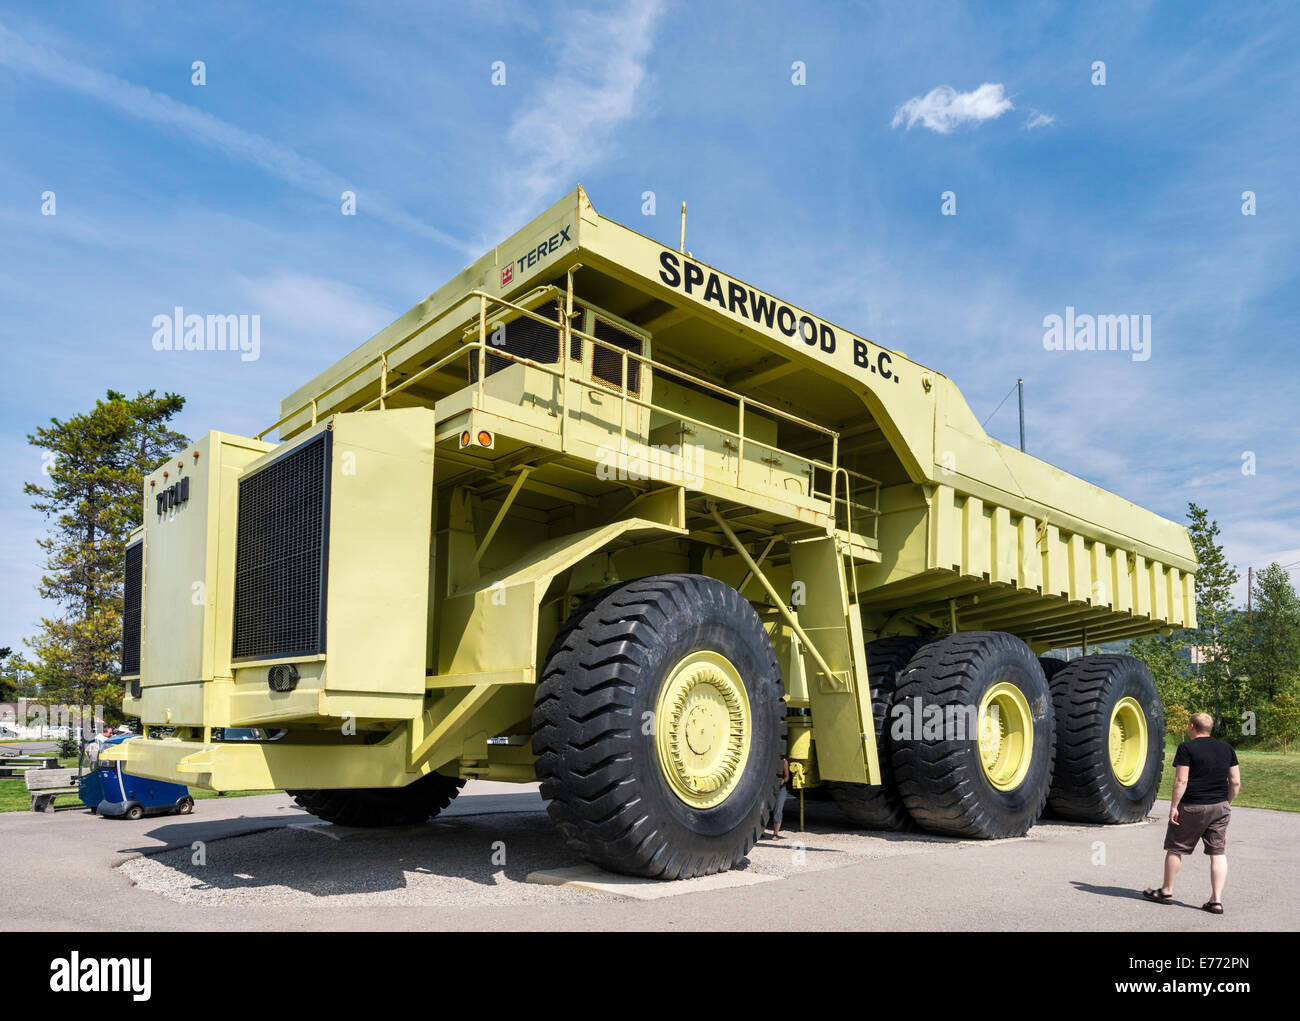 Terex Titan, haul truck for open pit mines, the largest truck in the world, on display in Sparwood, British Columbia, - Stock Image